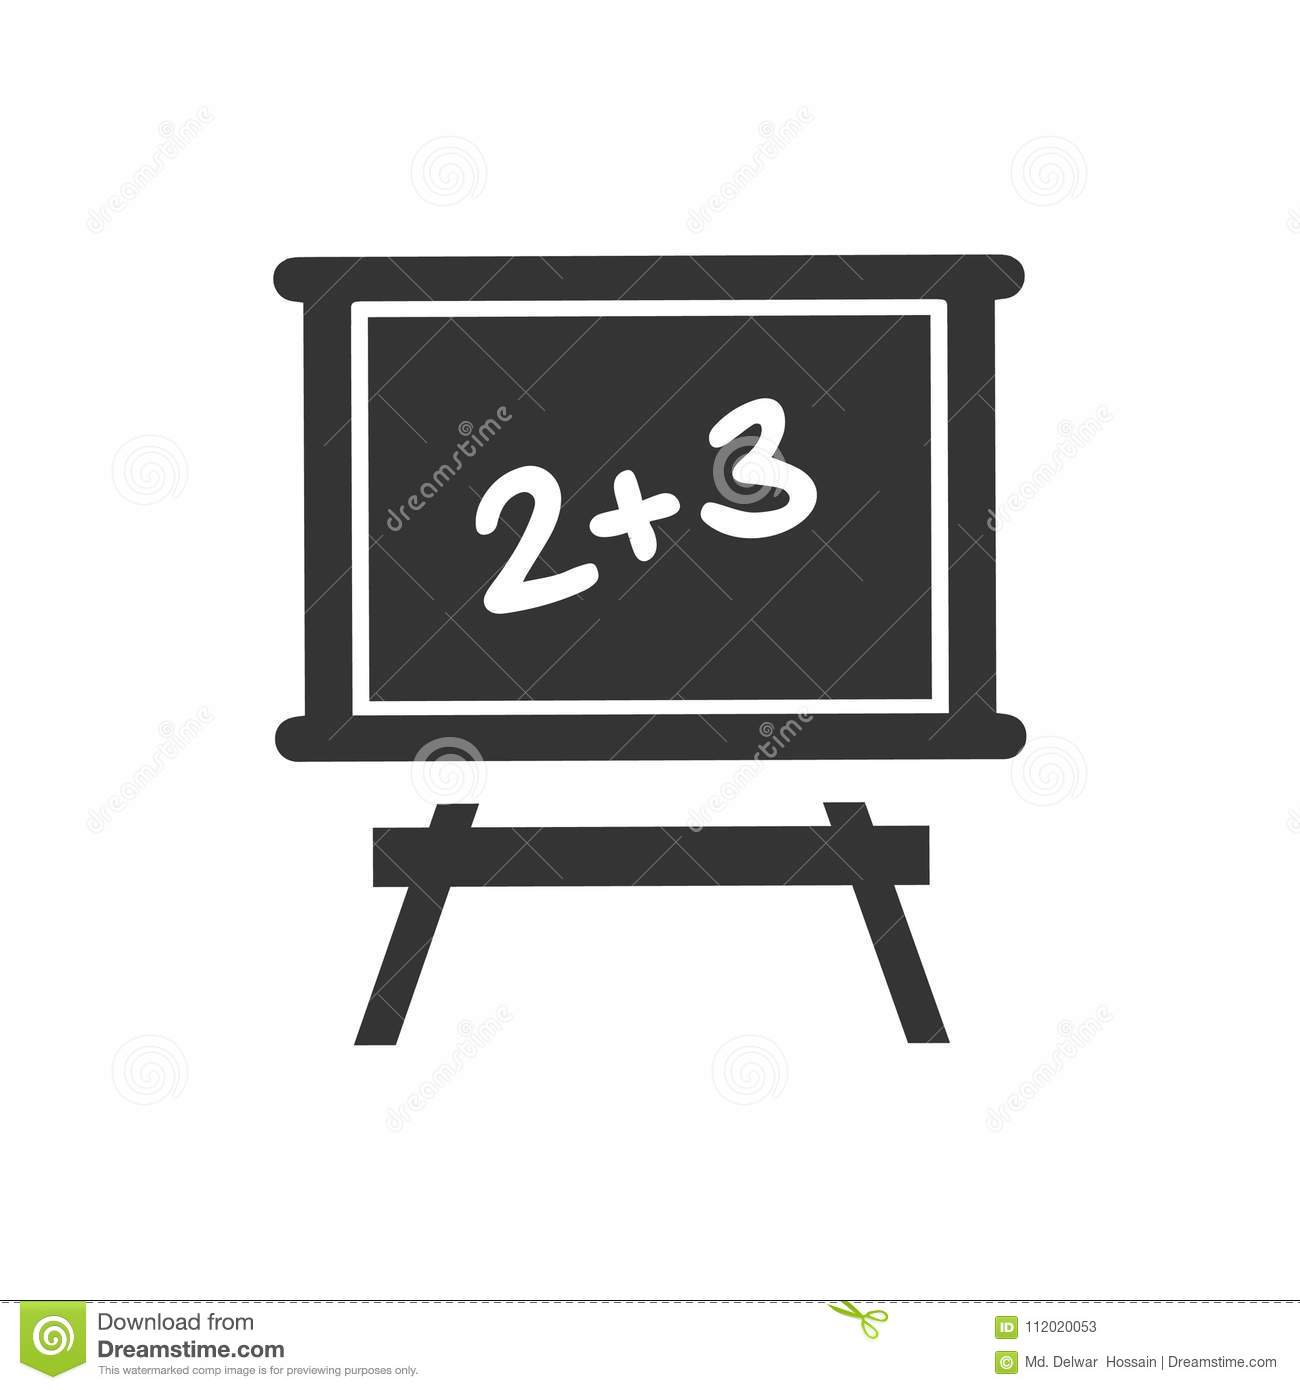 Learning Math Icon stock vector. Illustration of sign - 112020053